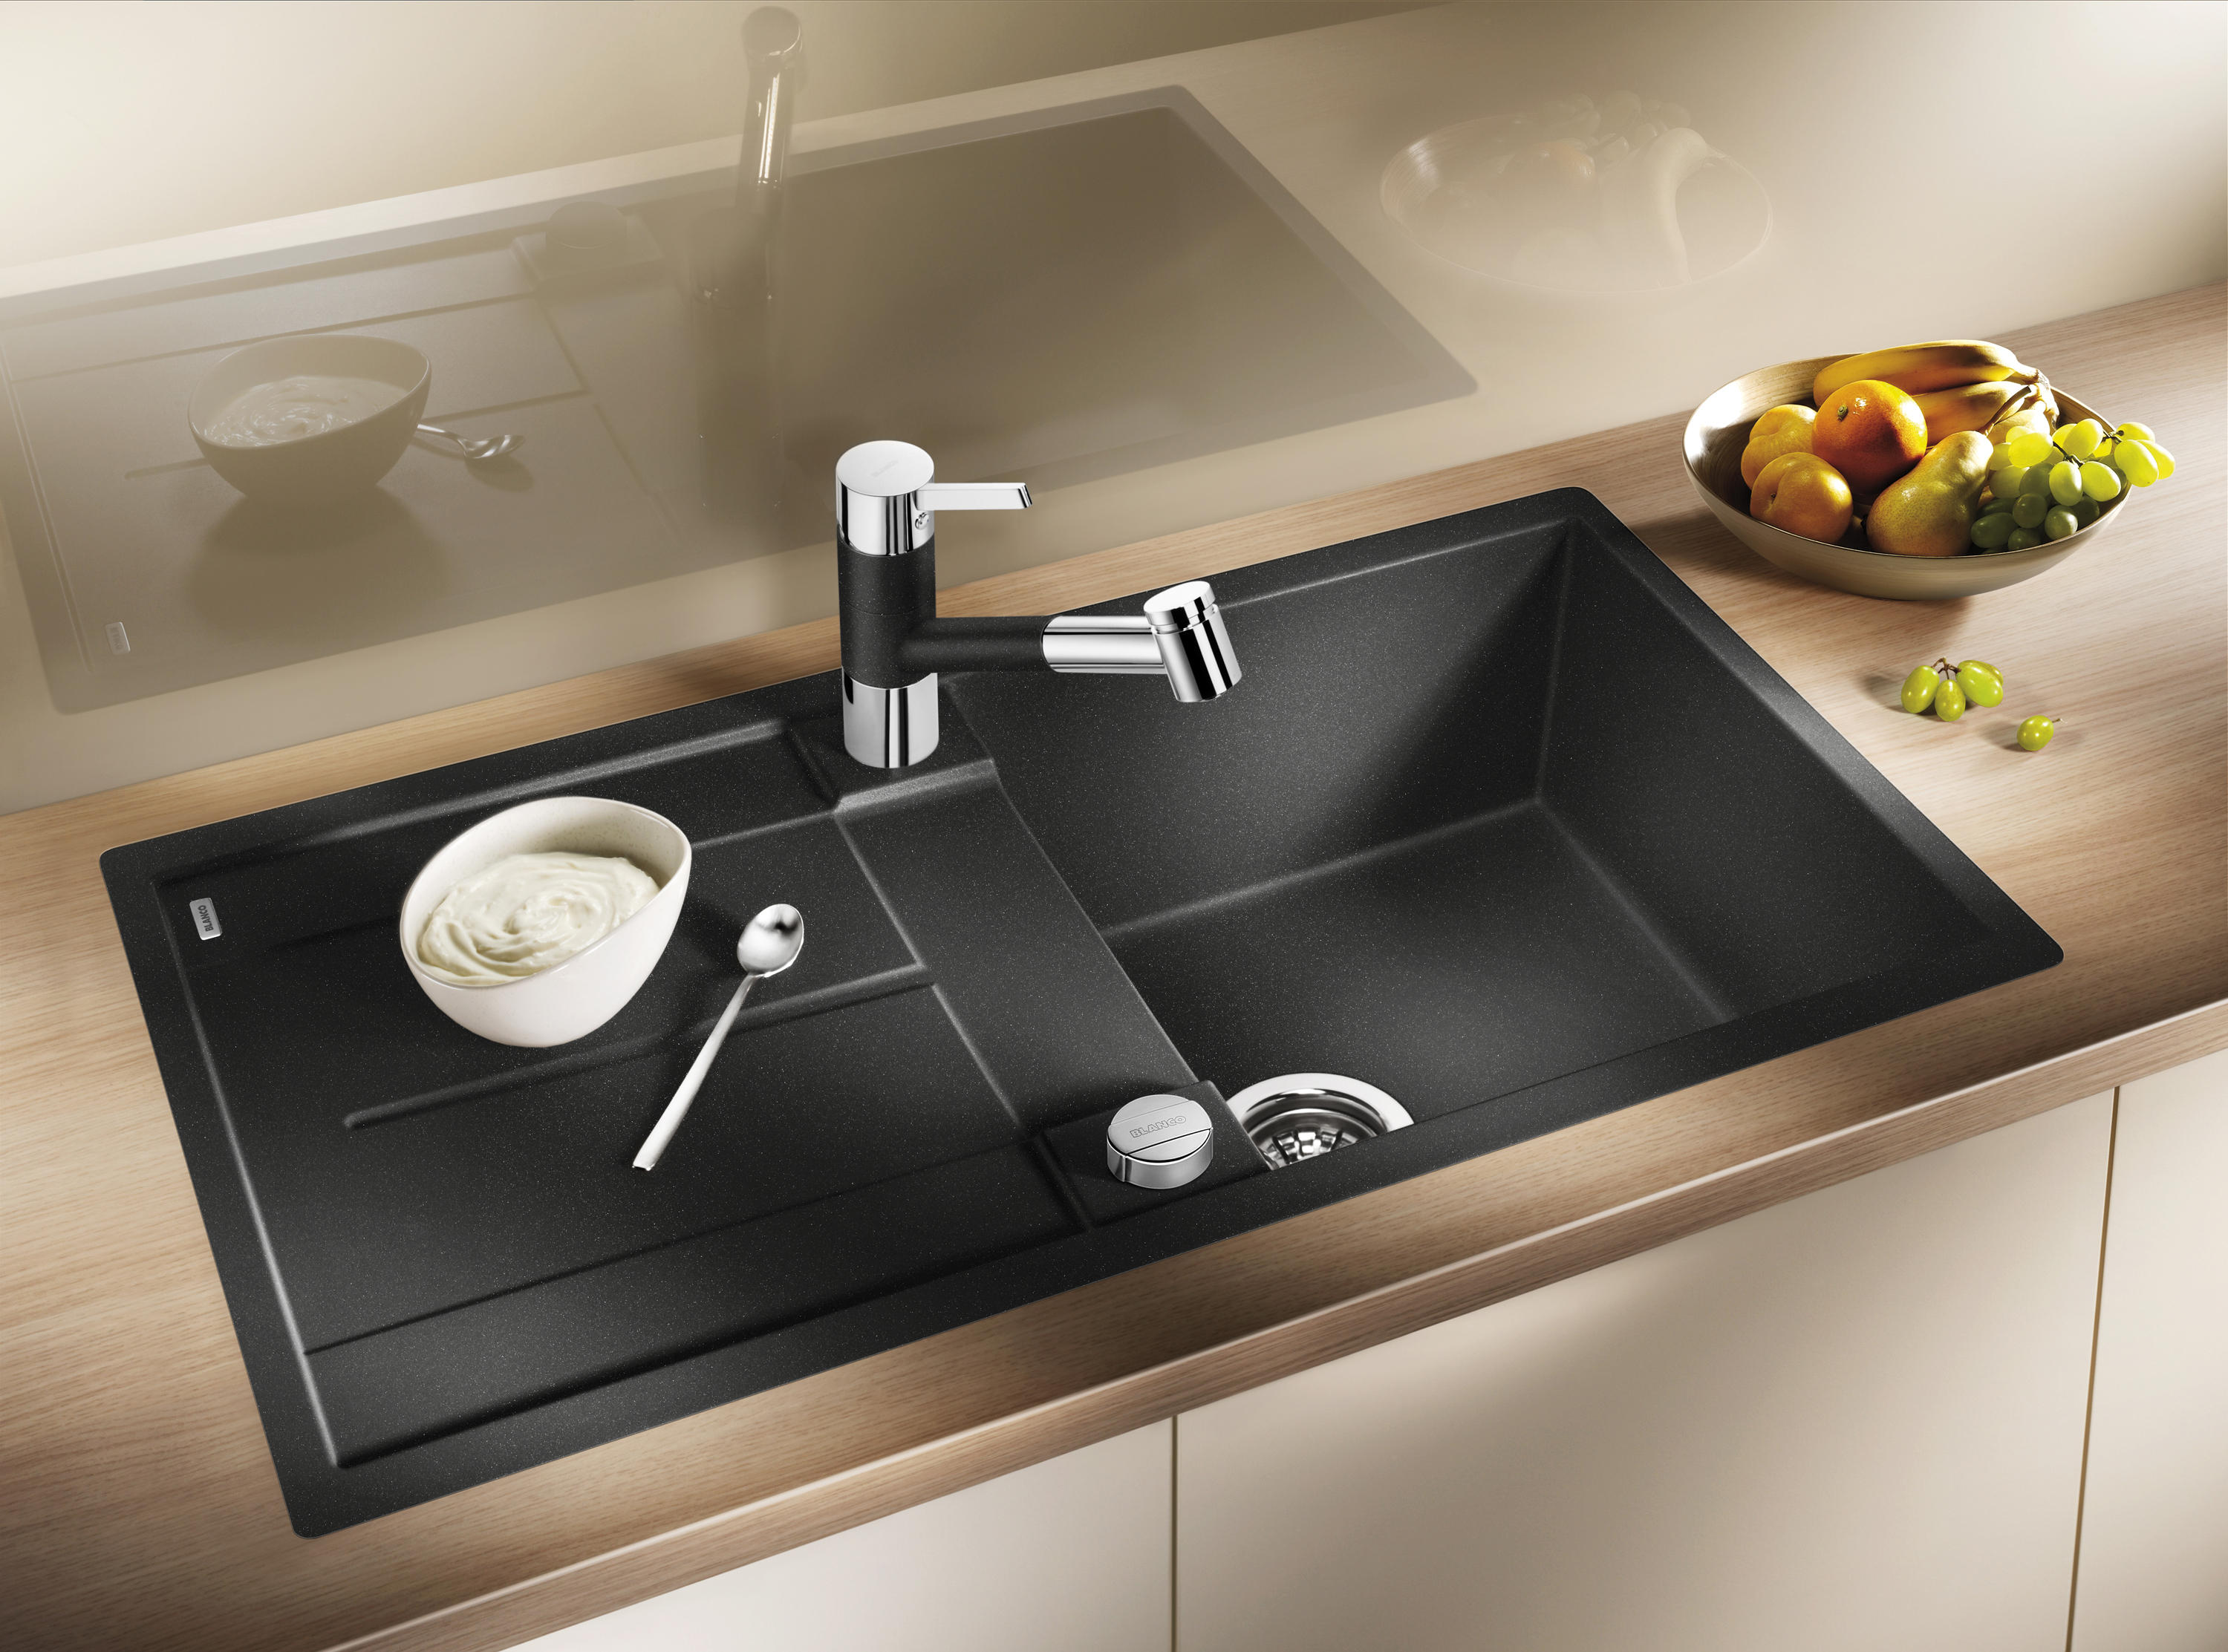 blanco metra 45 s silgranit anthracite kitchen sinks from blanco architonic. Black Bedroom Furniture Sets. Home Design Ideas